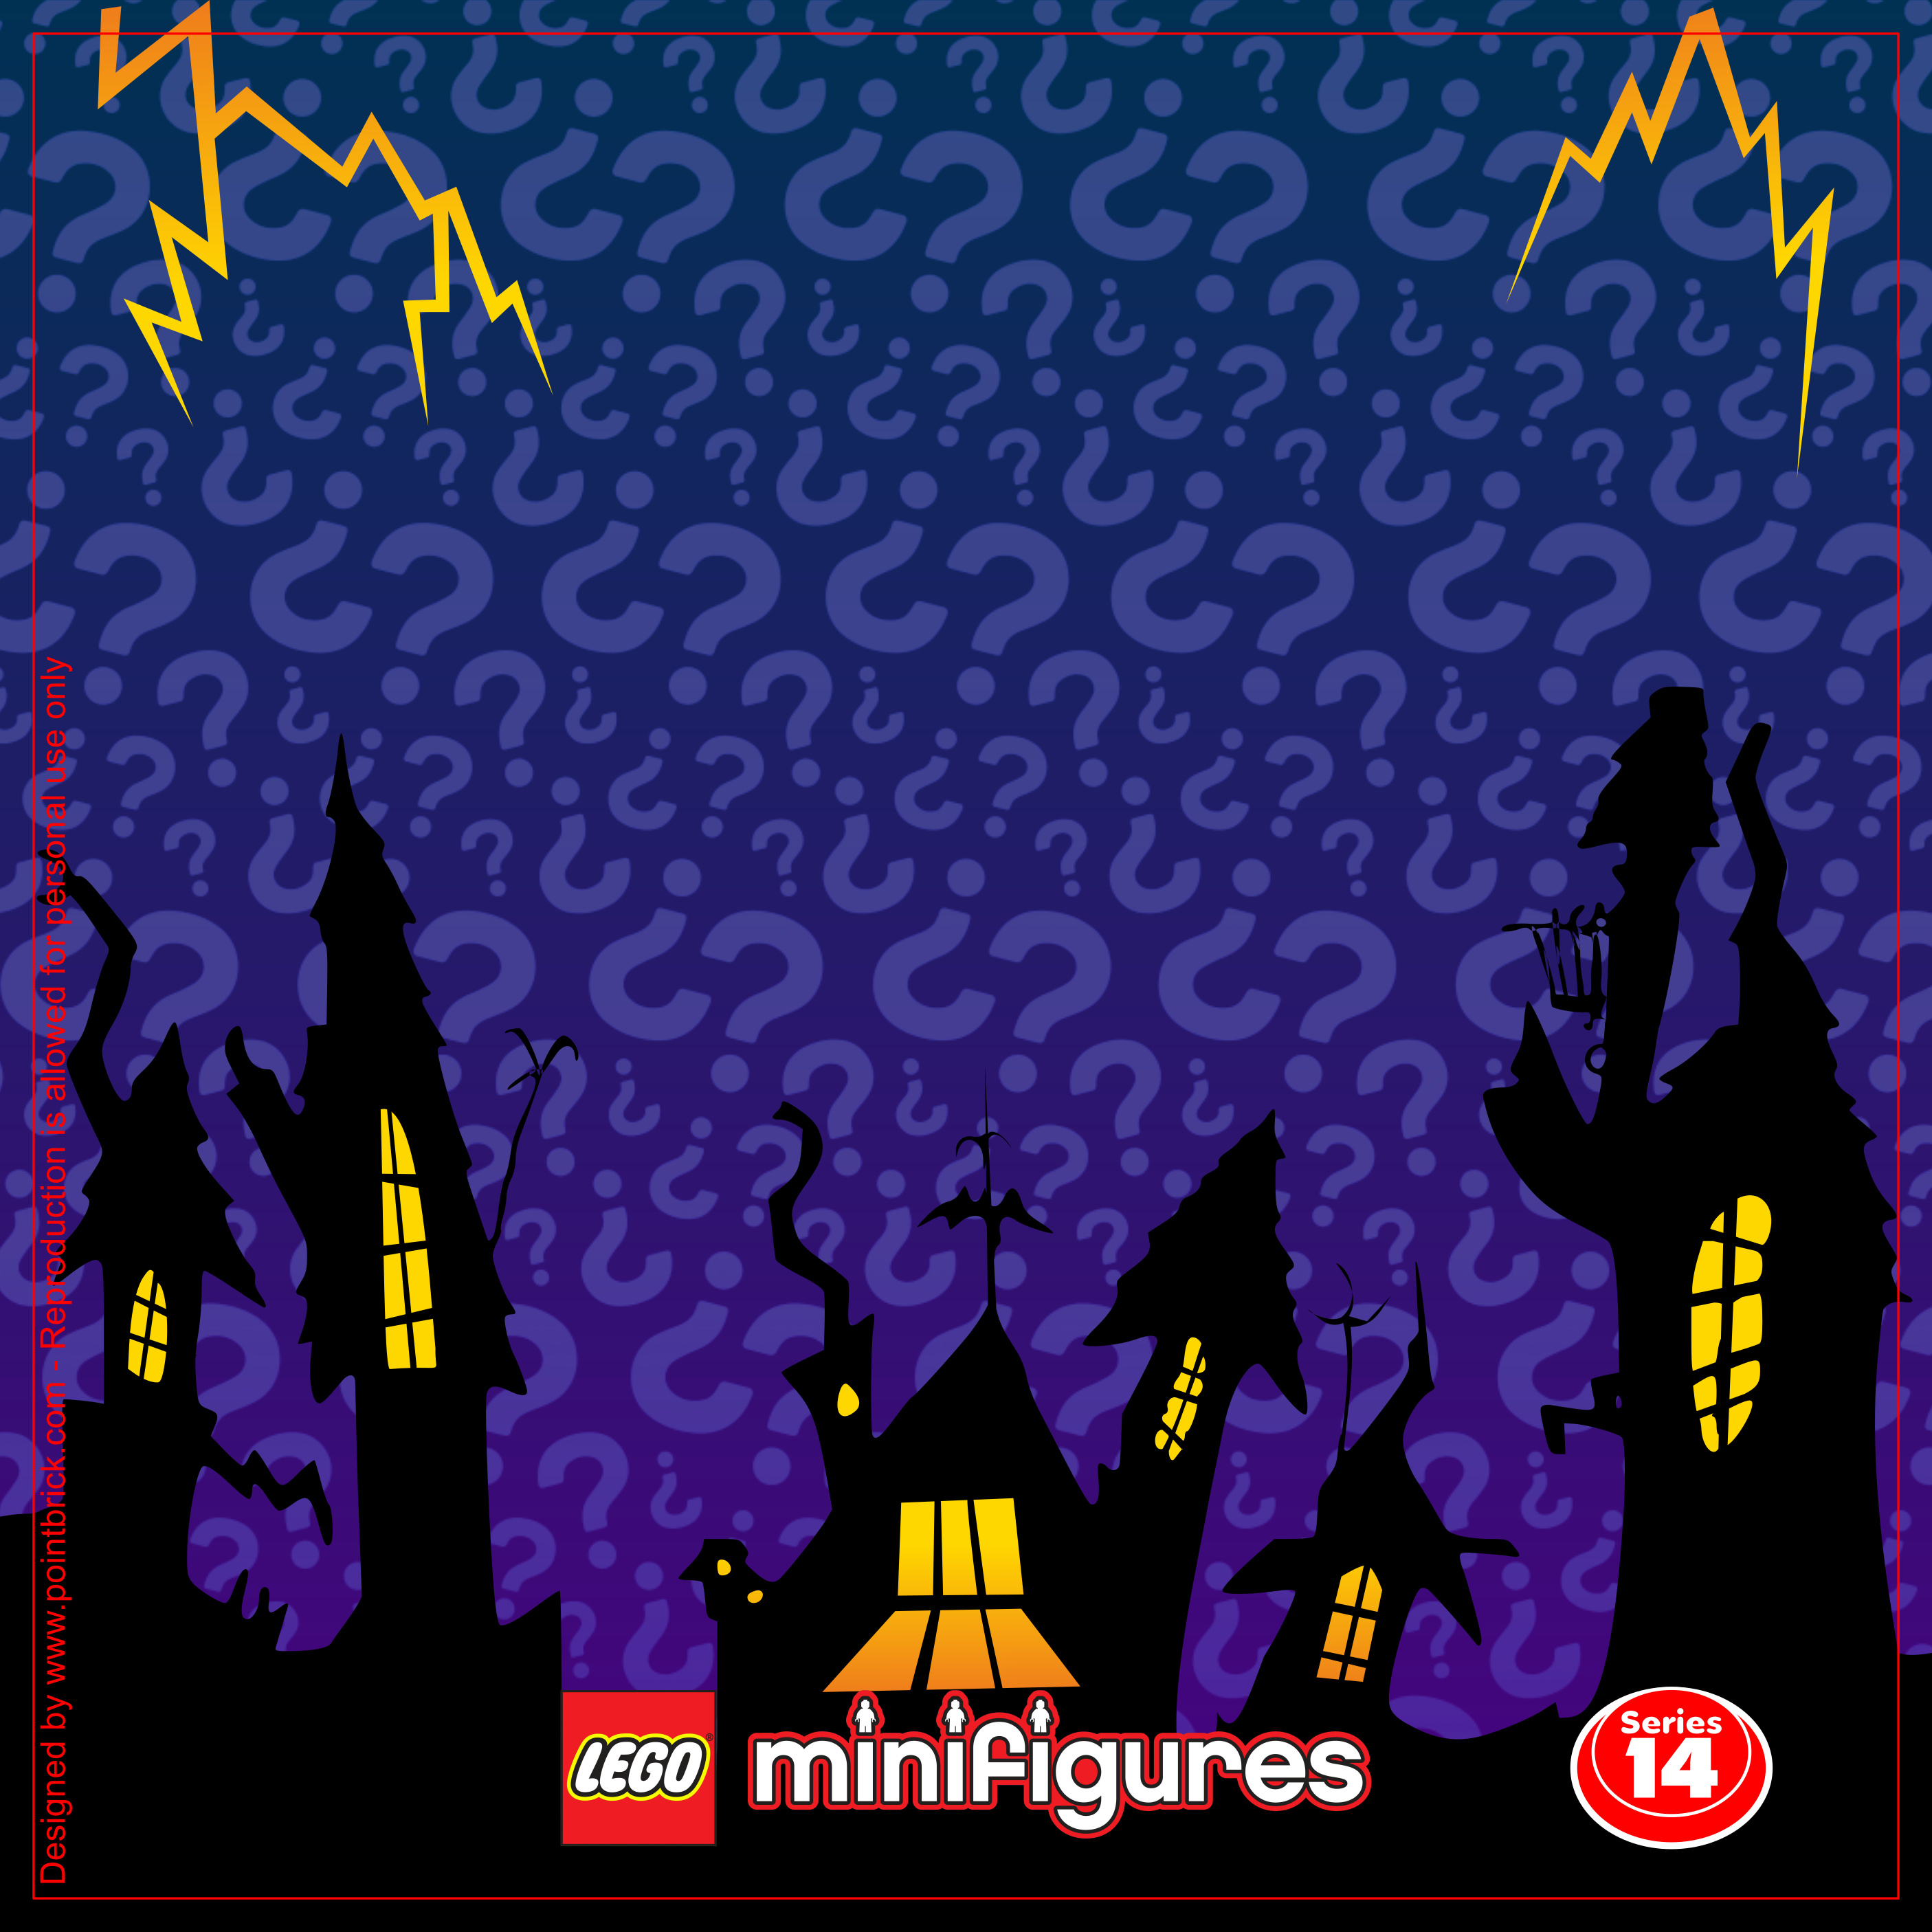 IKEA Ribba Hack - LEGO Minifigures Display Frame Plain Background - 71010 Serie 14 Halloween Monsters - Clicca sull'immagine per scaricarla gratuitamente!